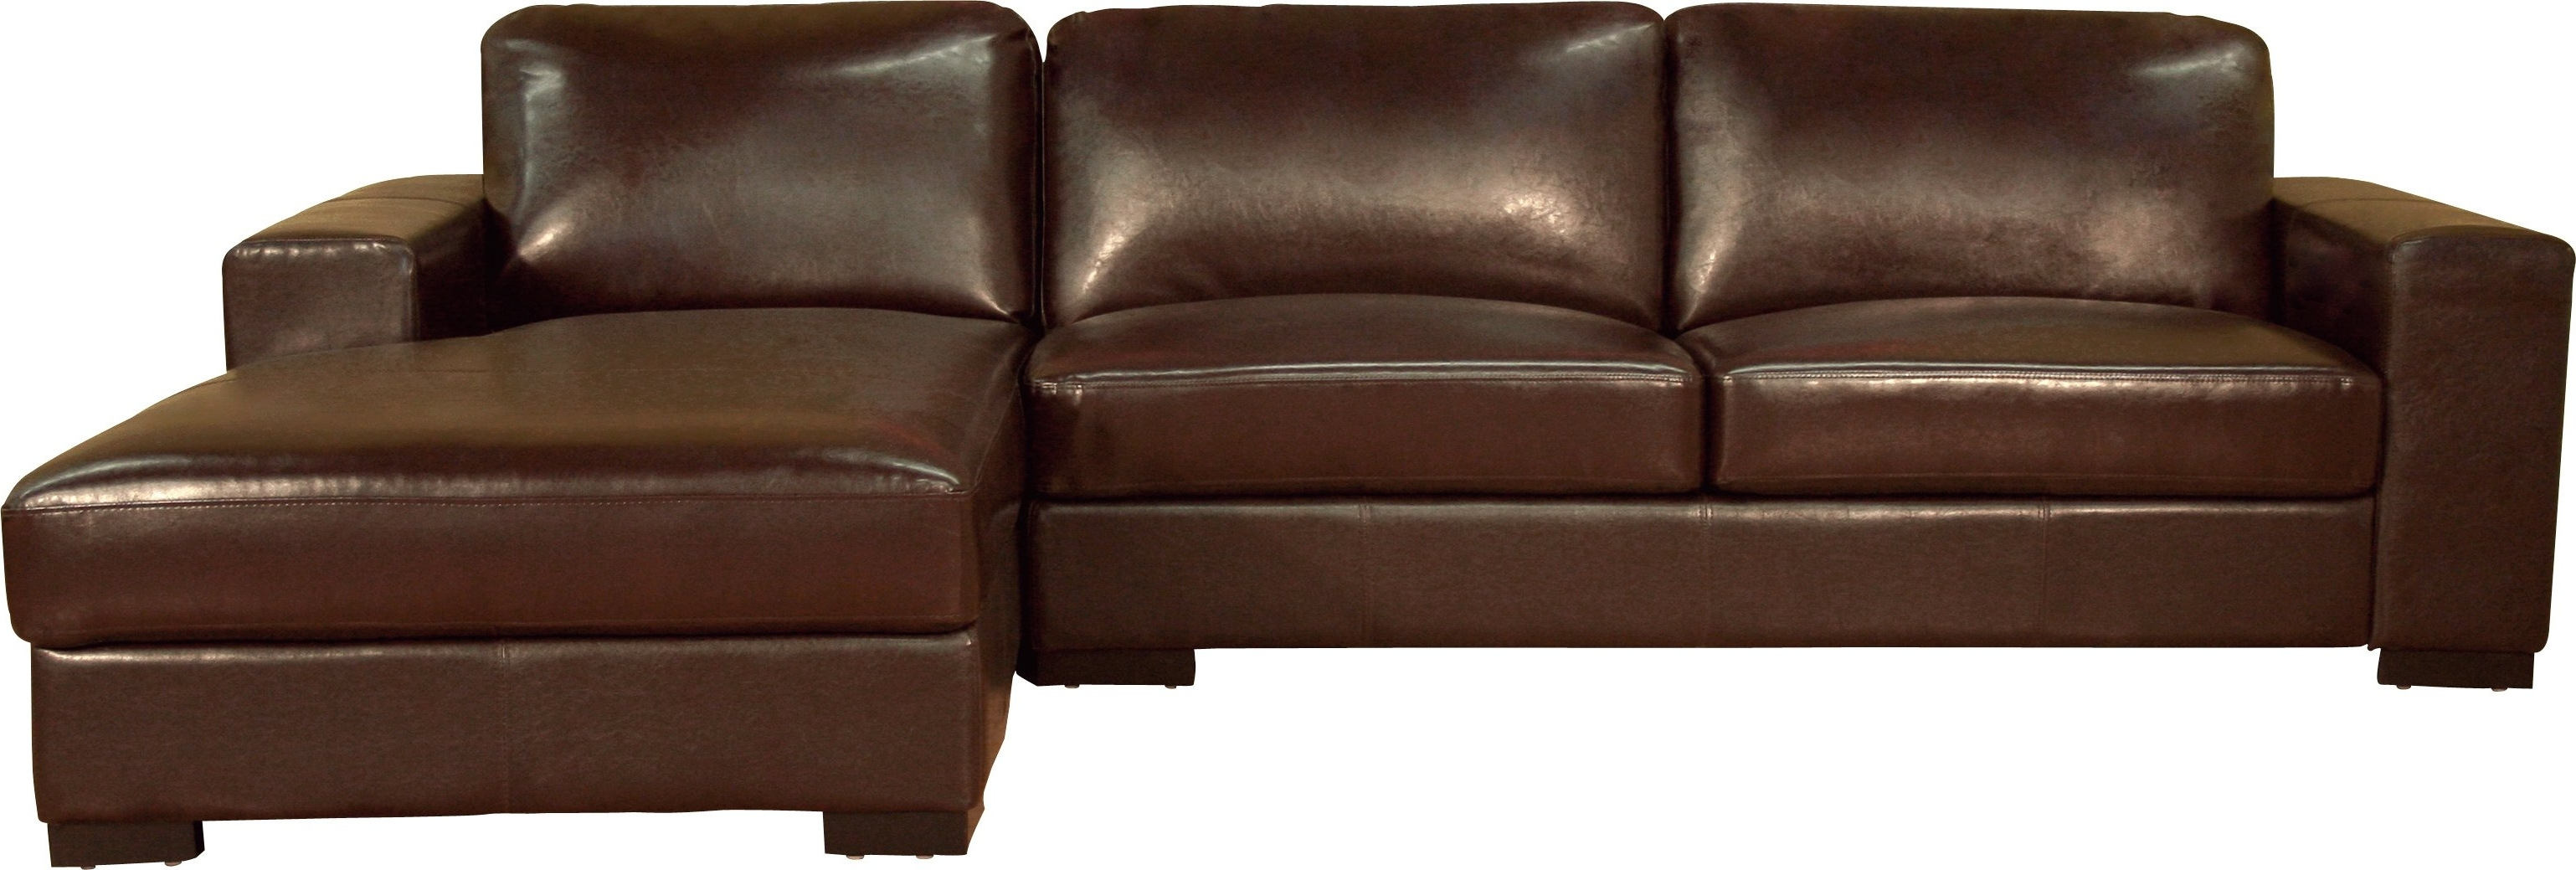 Leather Sofa Chaises Within Most Up To Date Popular Leather Sofa With Chaise Lounge With Brown Leather Sofa (View 4 of 15)